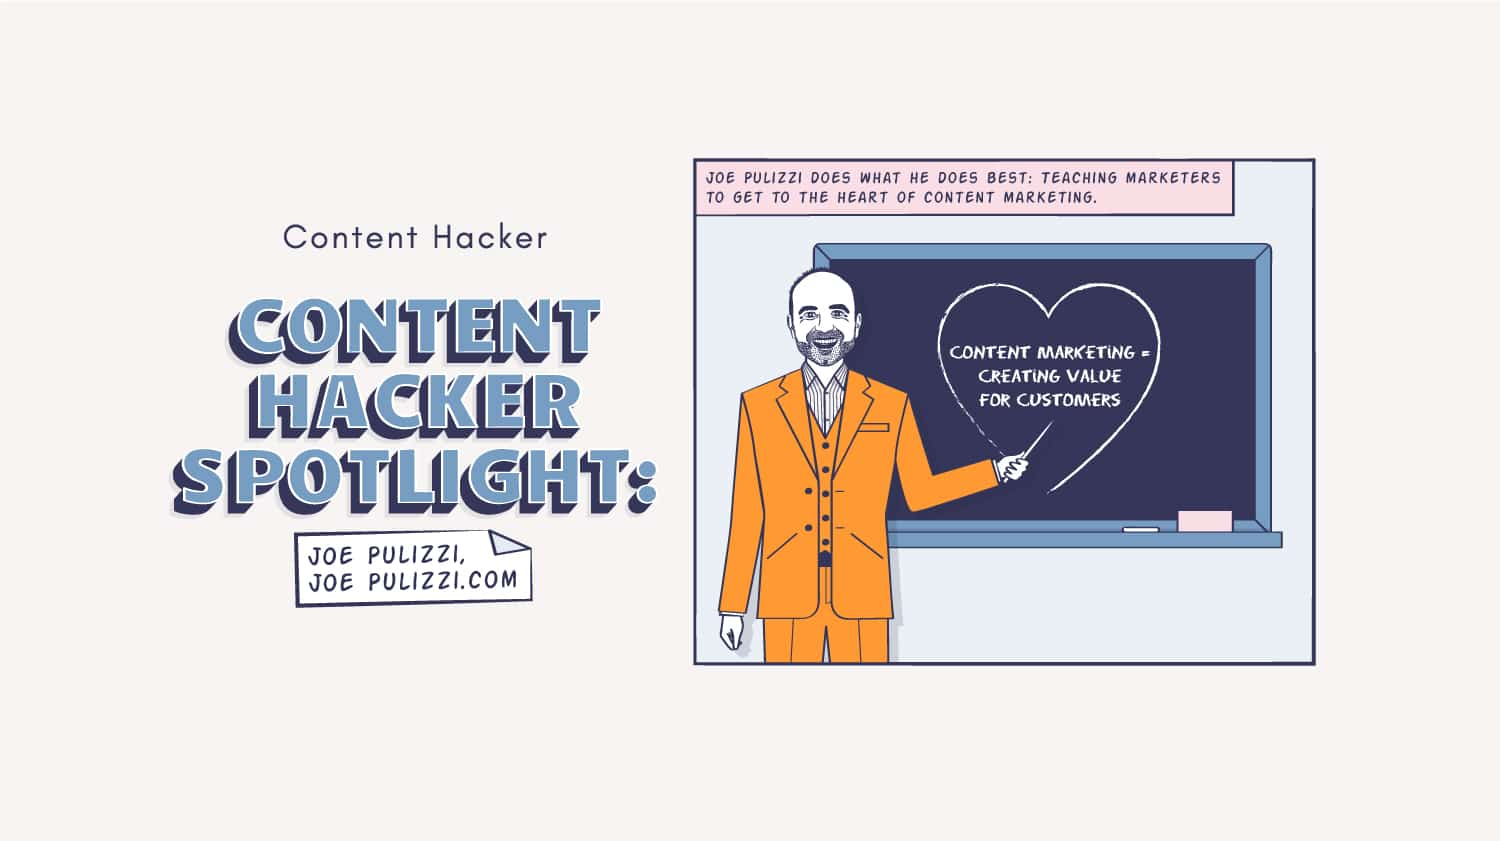 Content Hacker spotlight on Joe Pulizzi